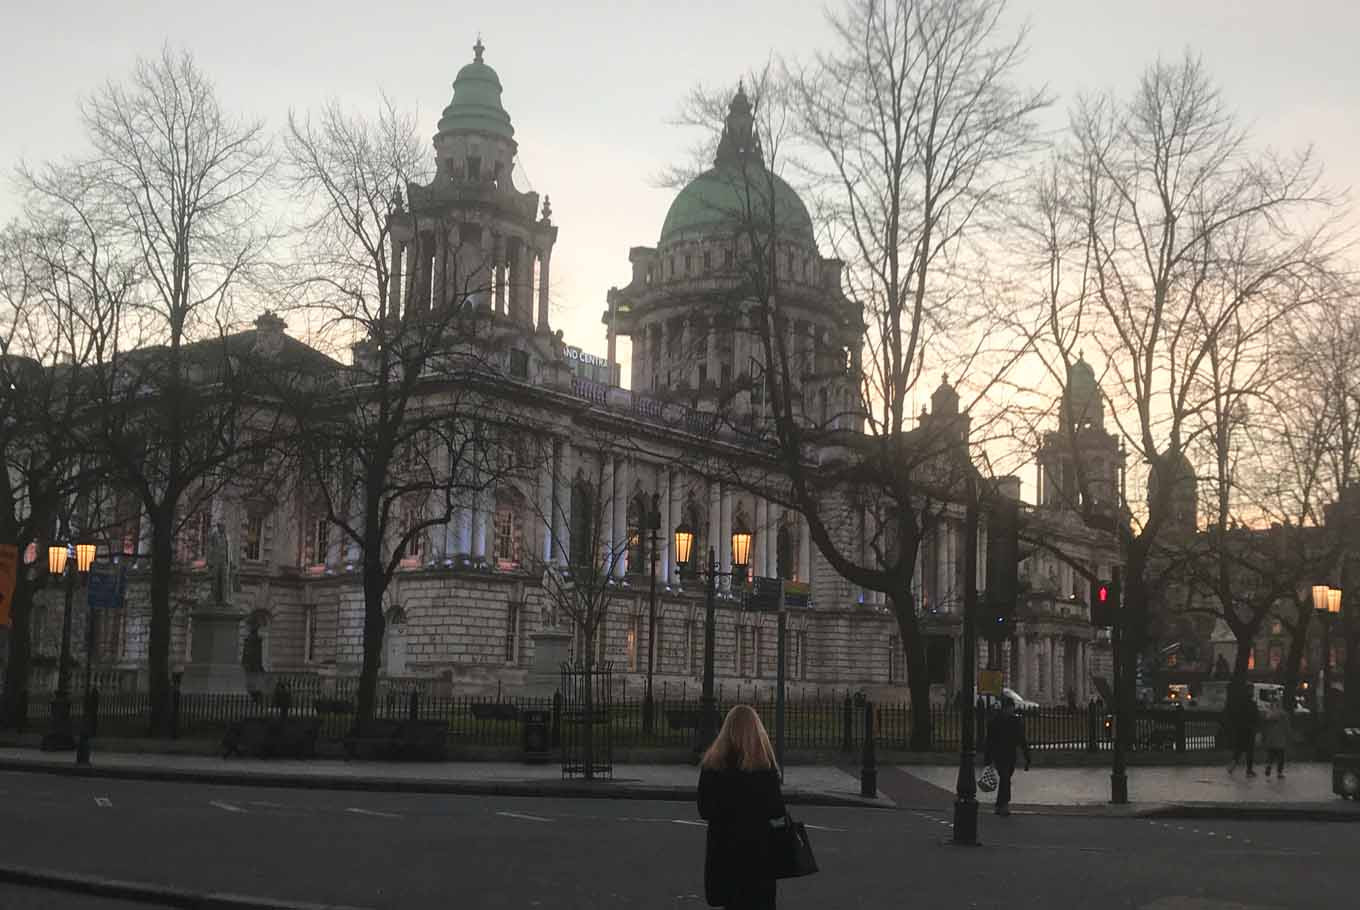 Belfast City Hall's Baroque Revival